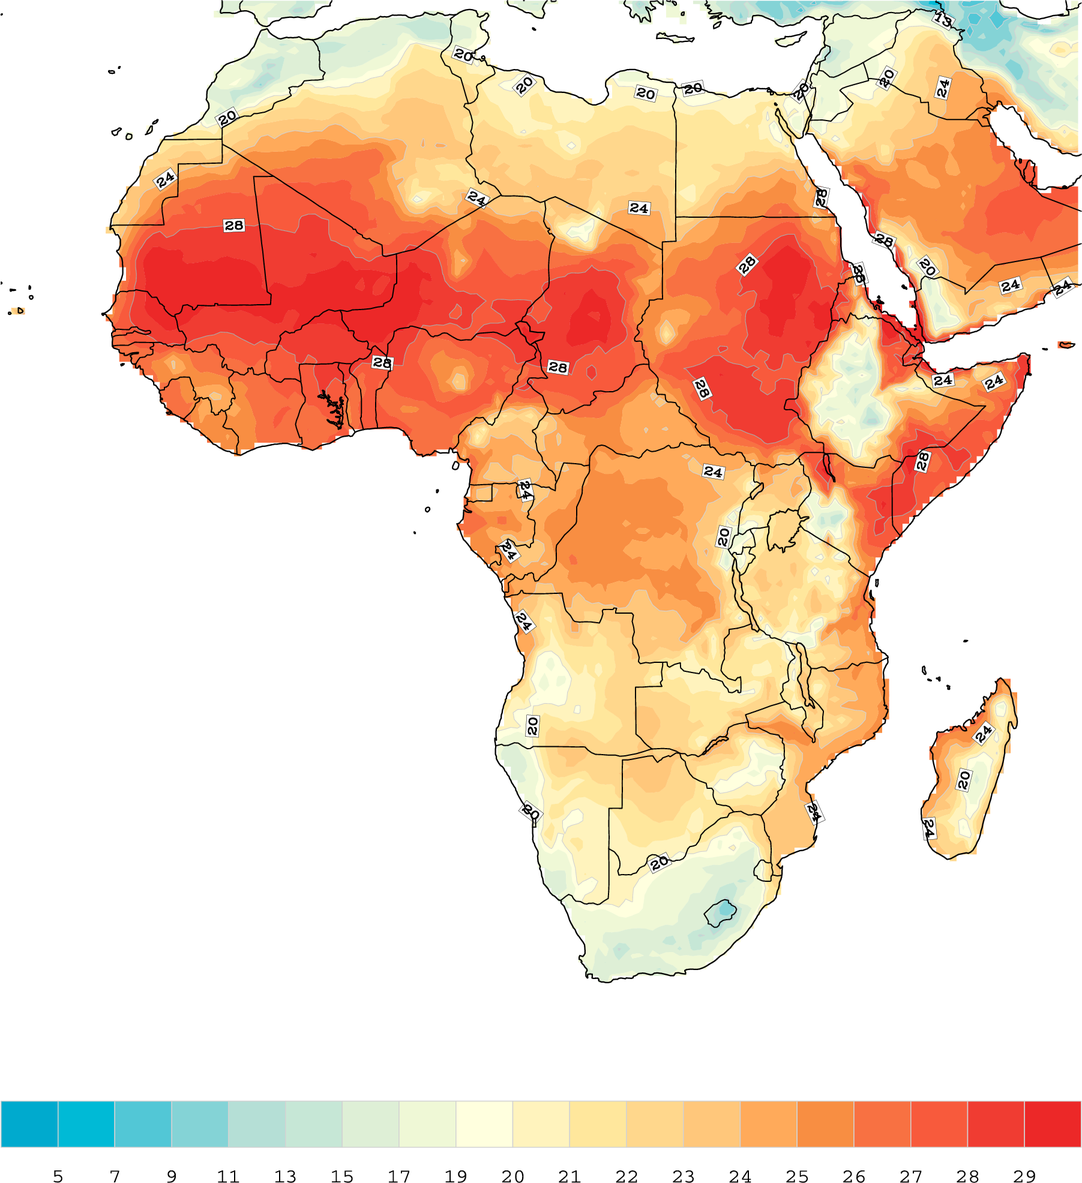 Africa_1971_2000_mean_temperature.png